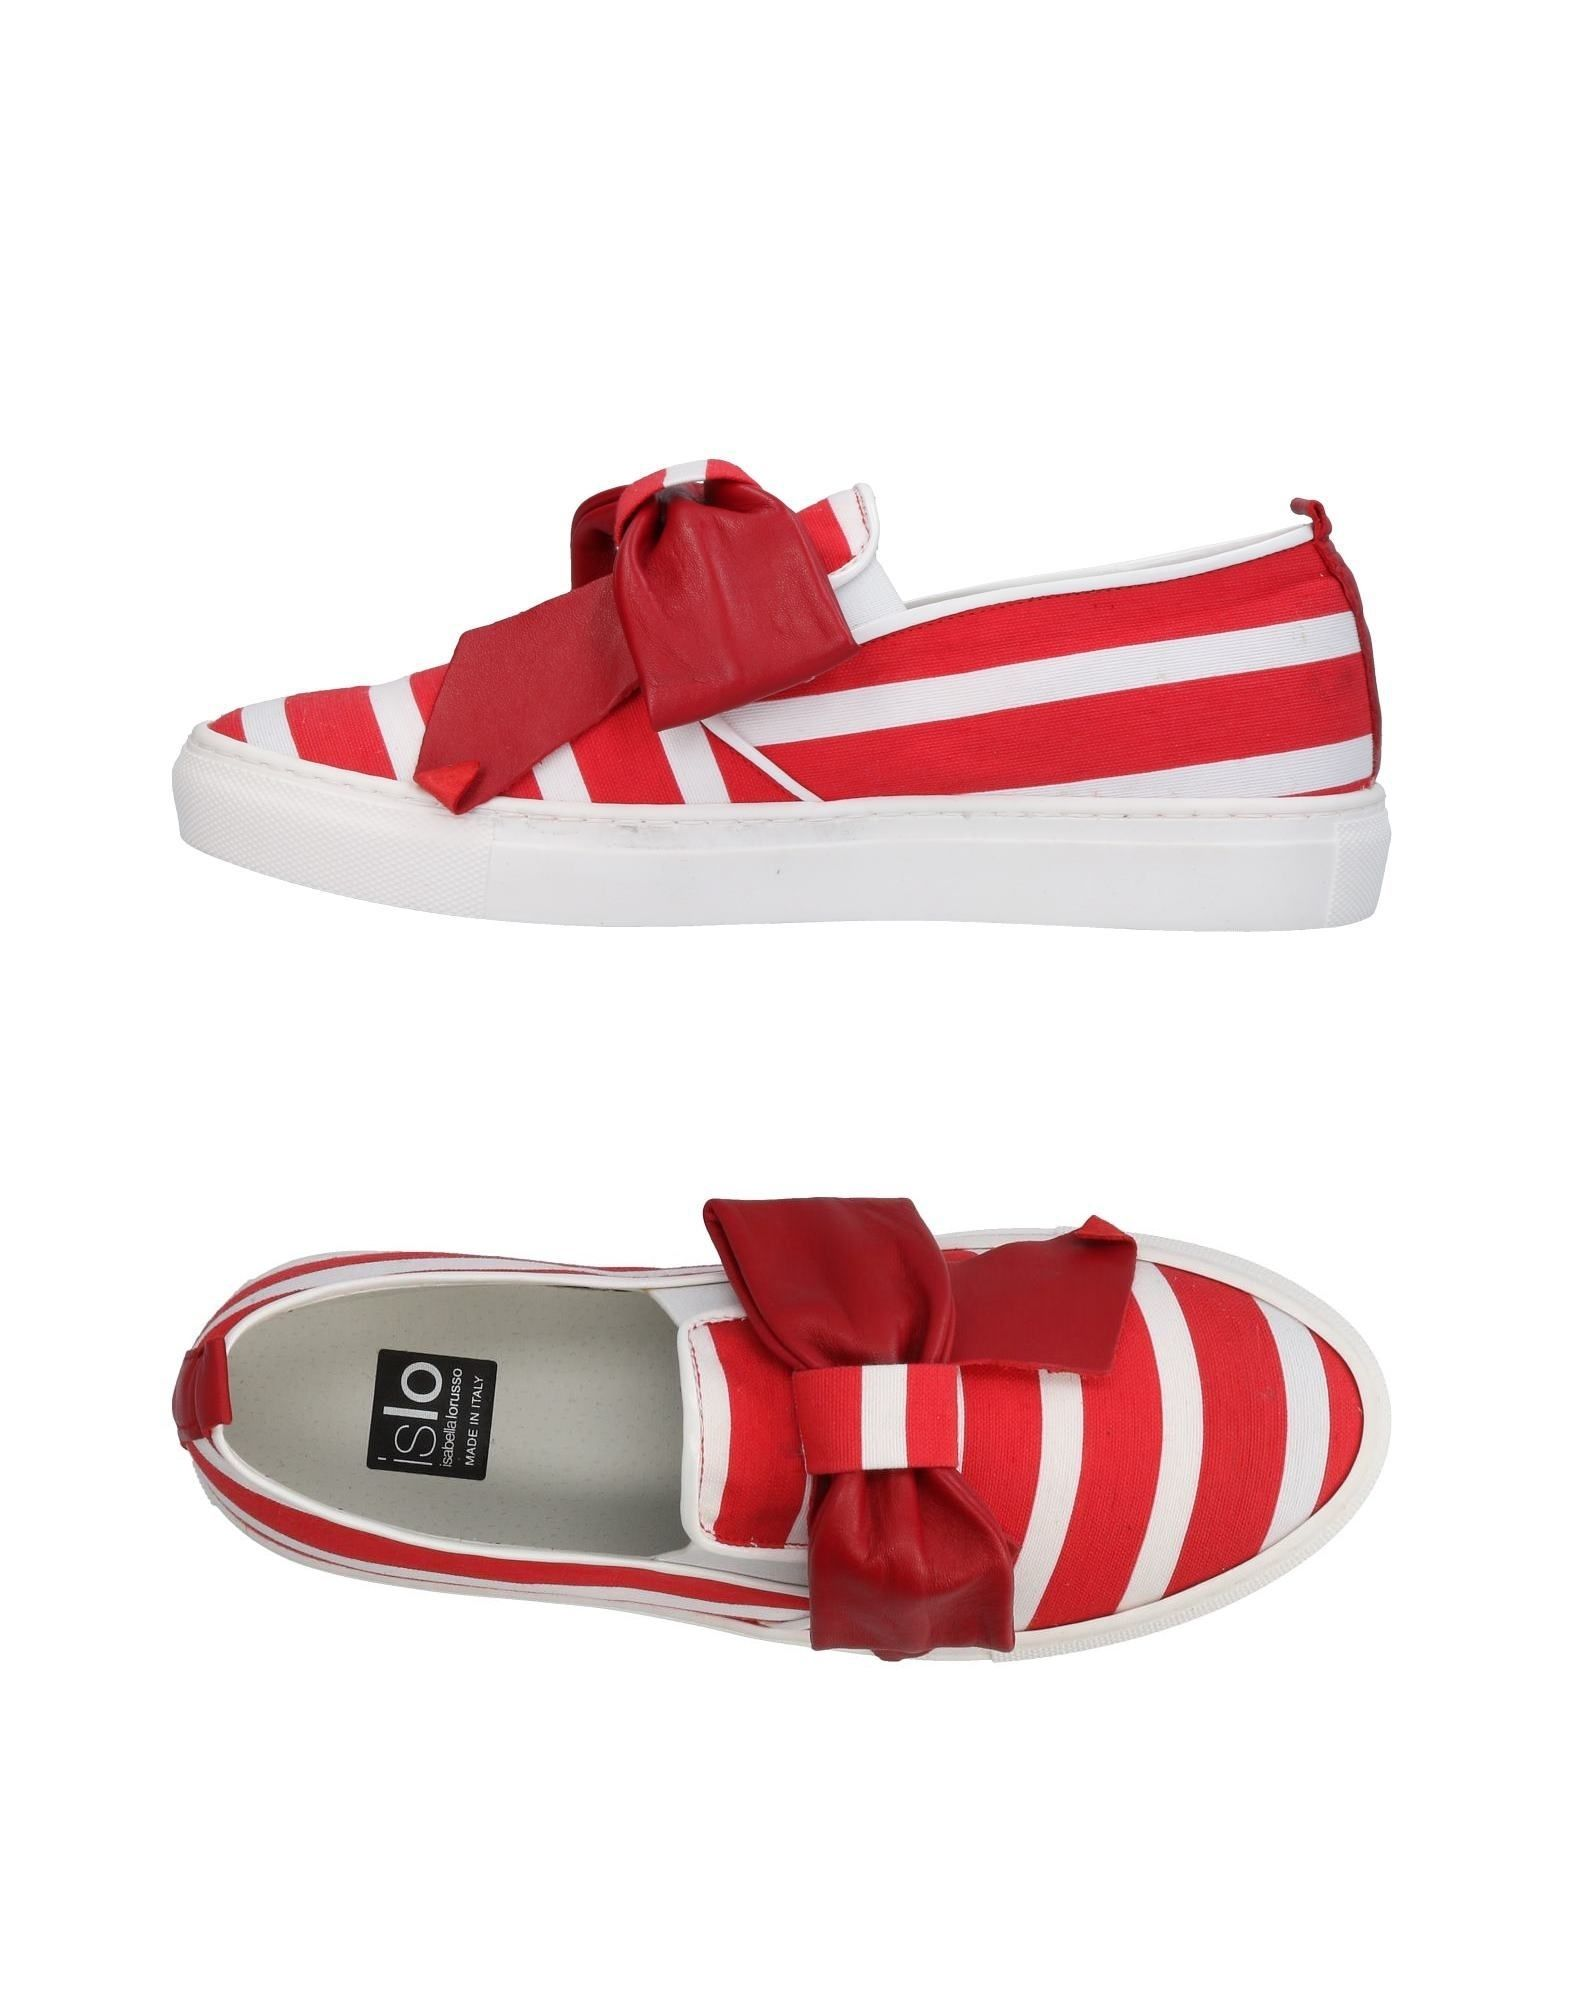 Sneakers Islo Isabella Lorusso Donna - 11416286IF